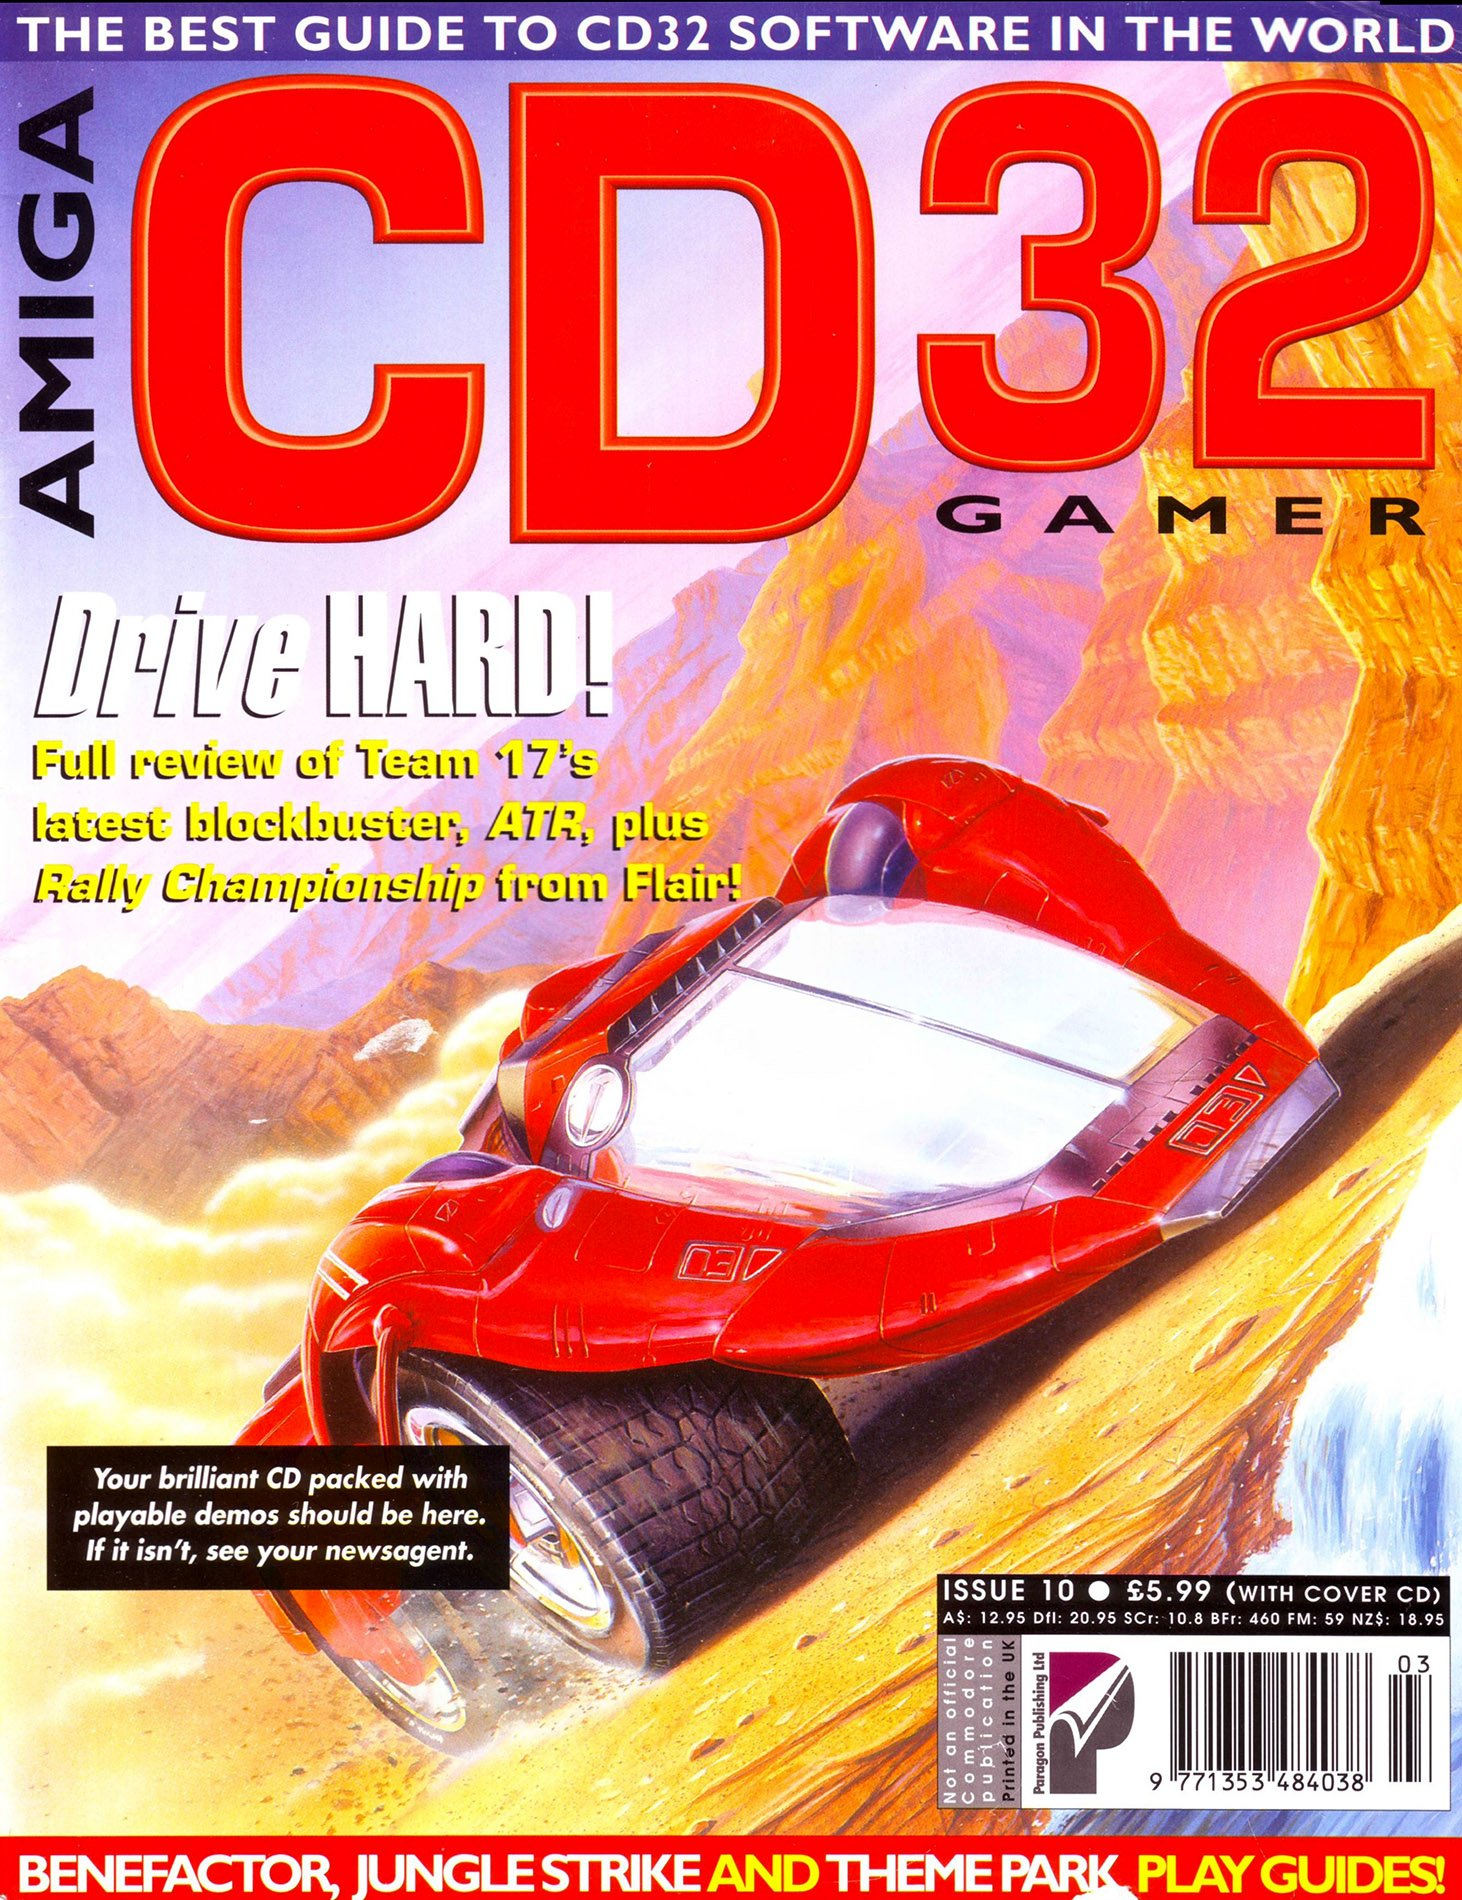 Amiga CD32 Gamer Issue 10 March 1995